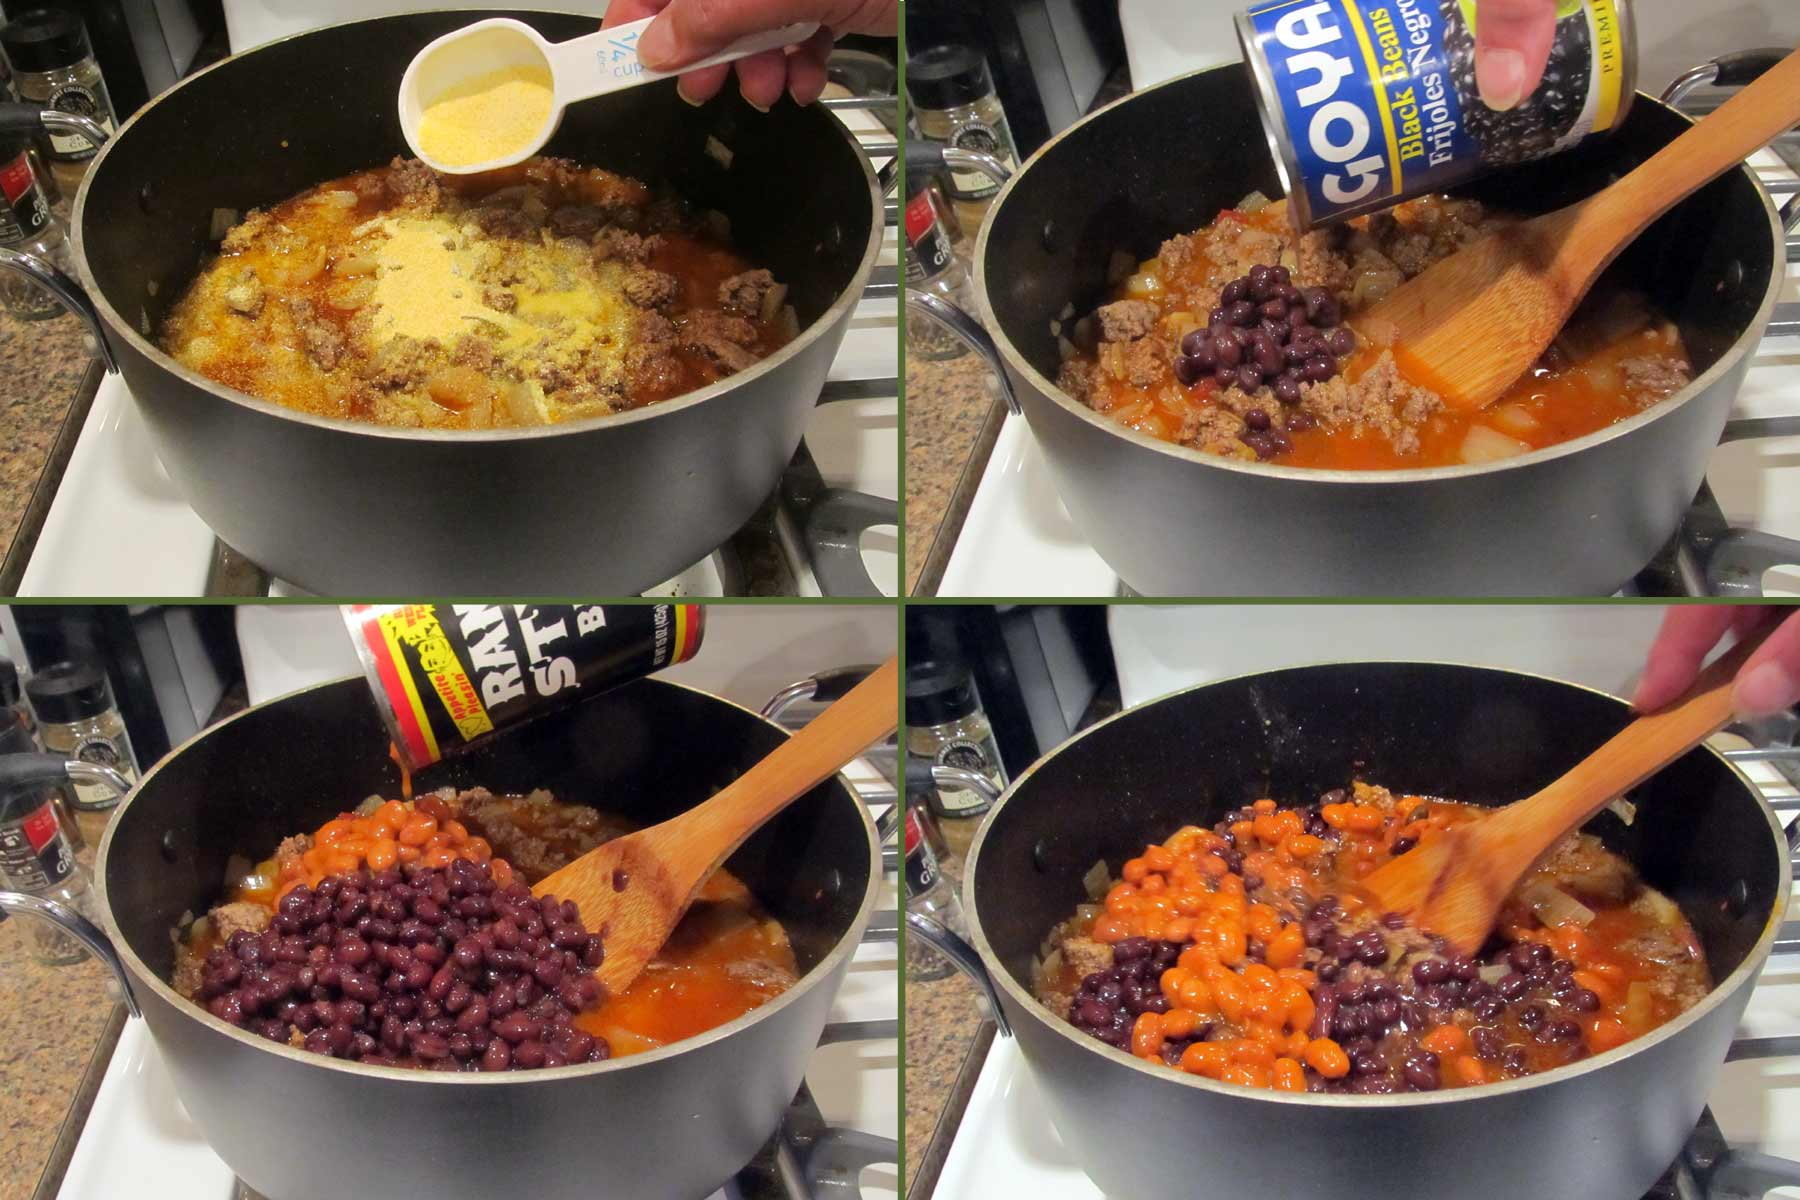 Adding Cornmeal and Beans to the Chili